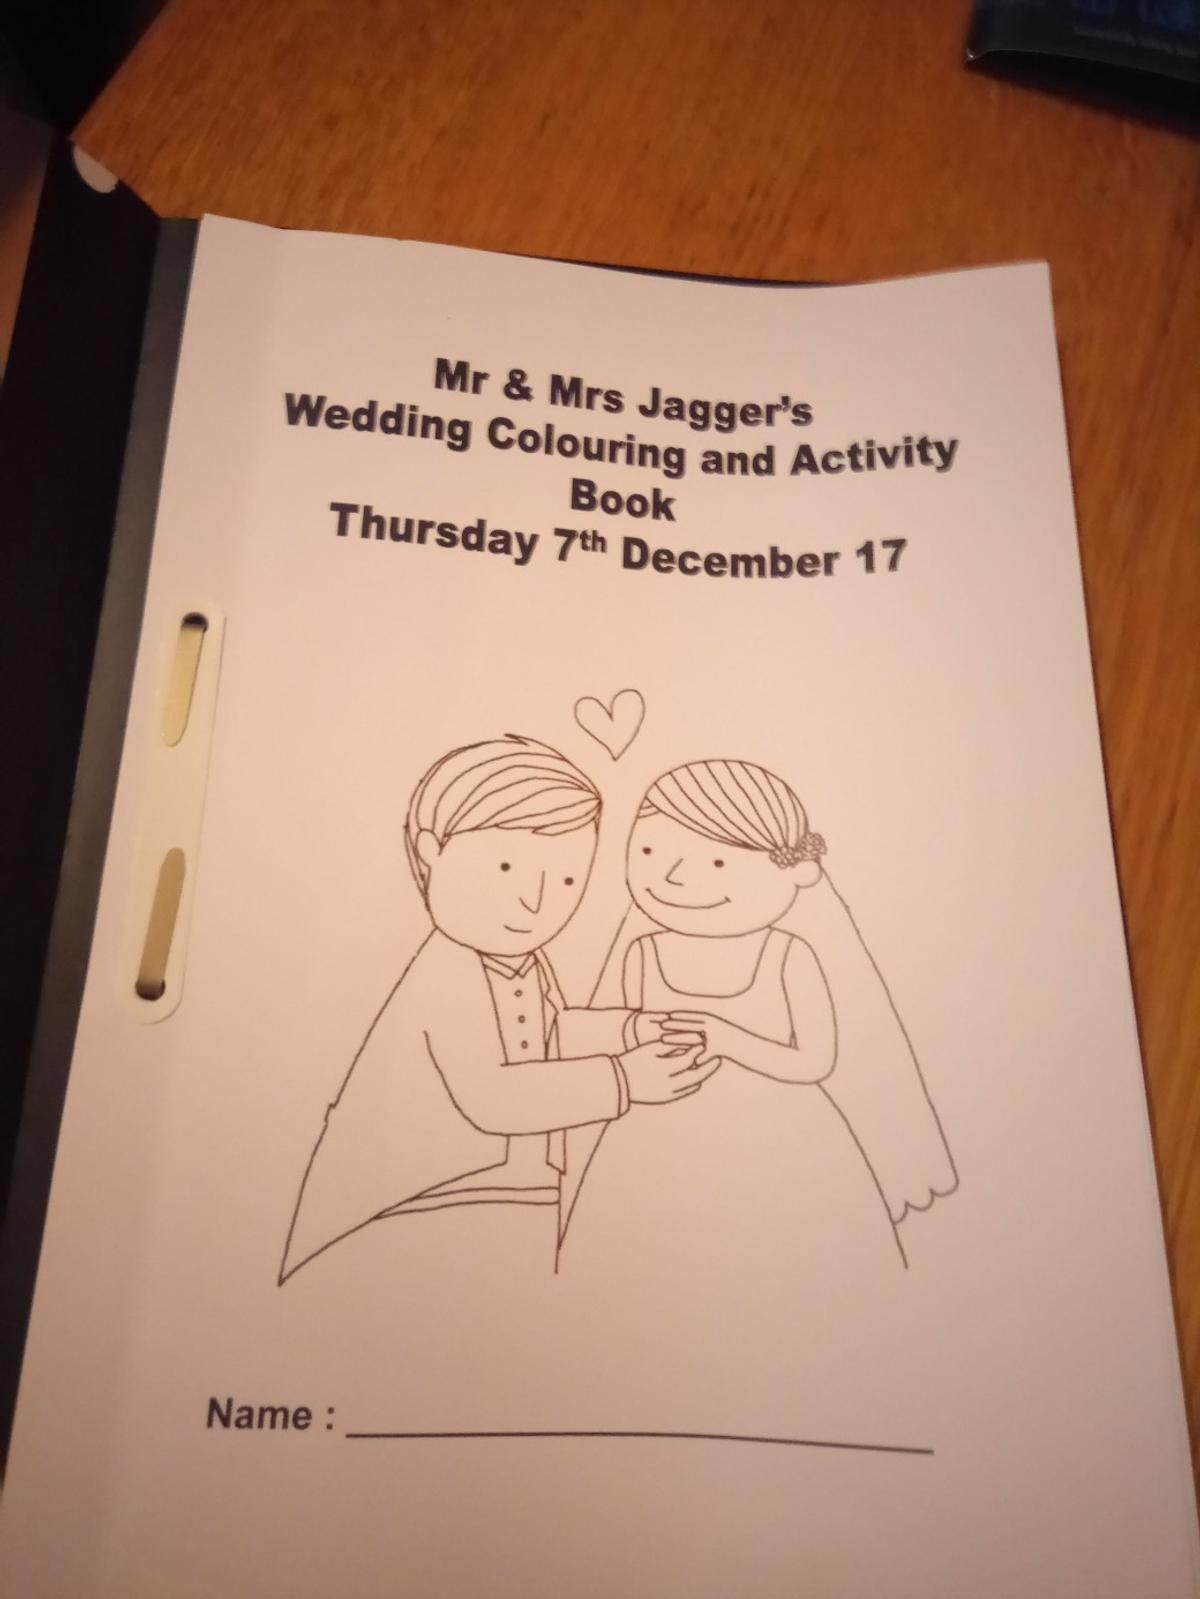 Pdf Wedding Colouring Books In S43 Bolsover For 5 00 For